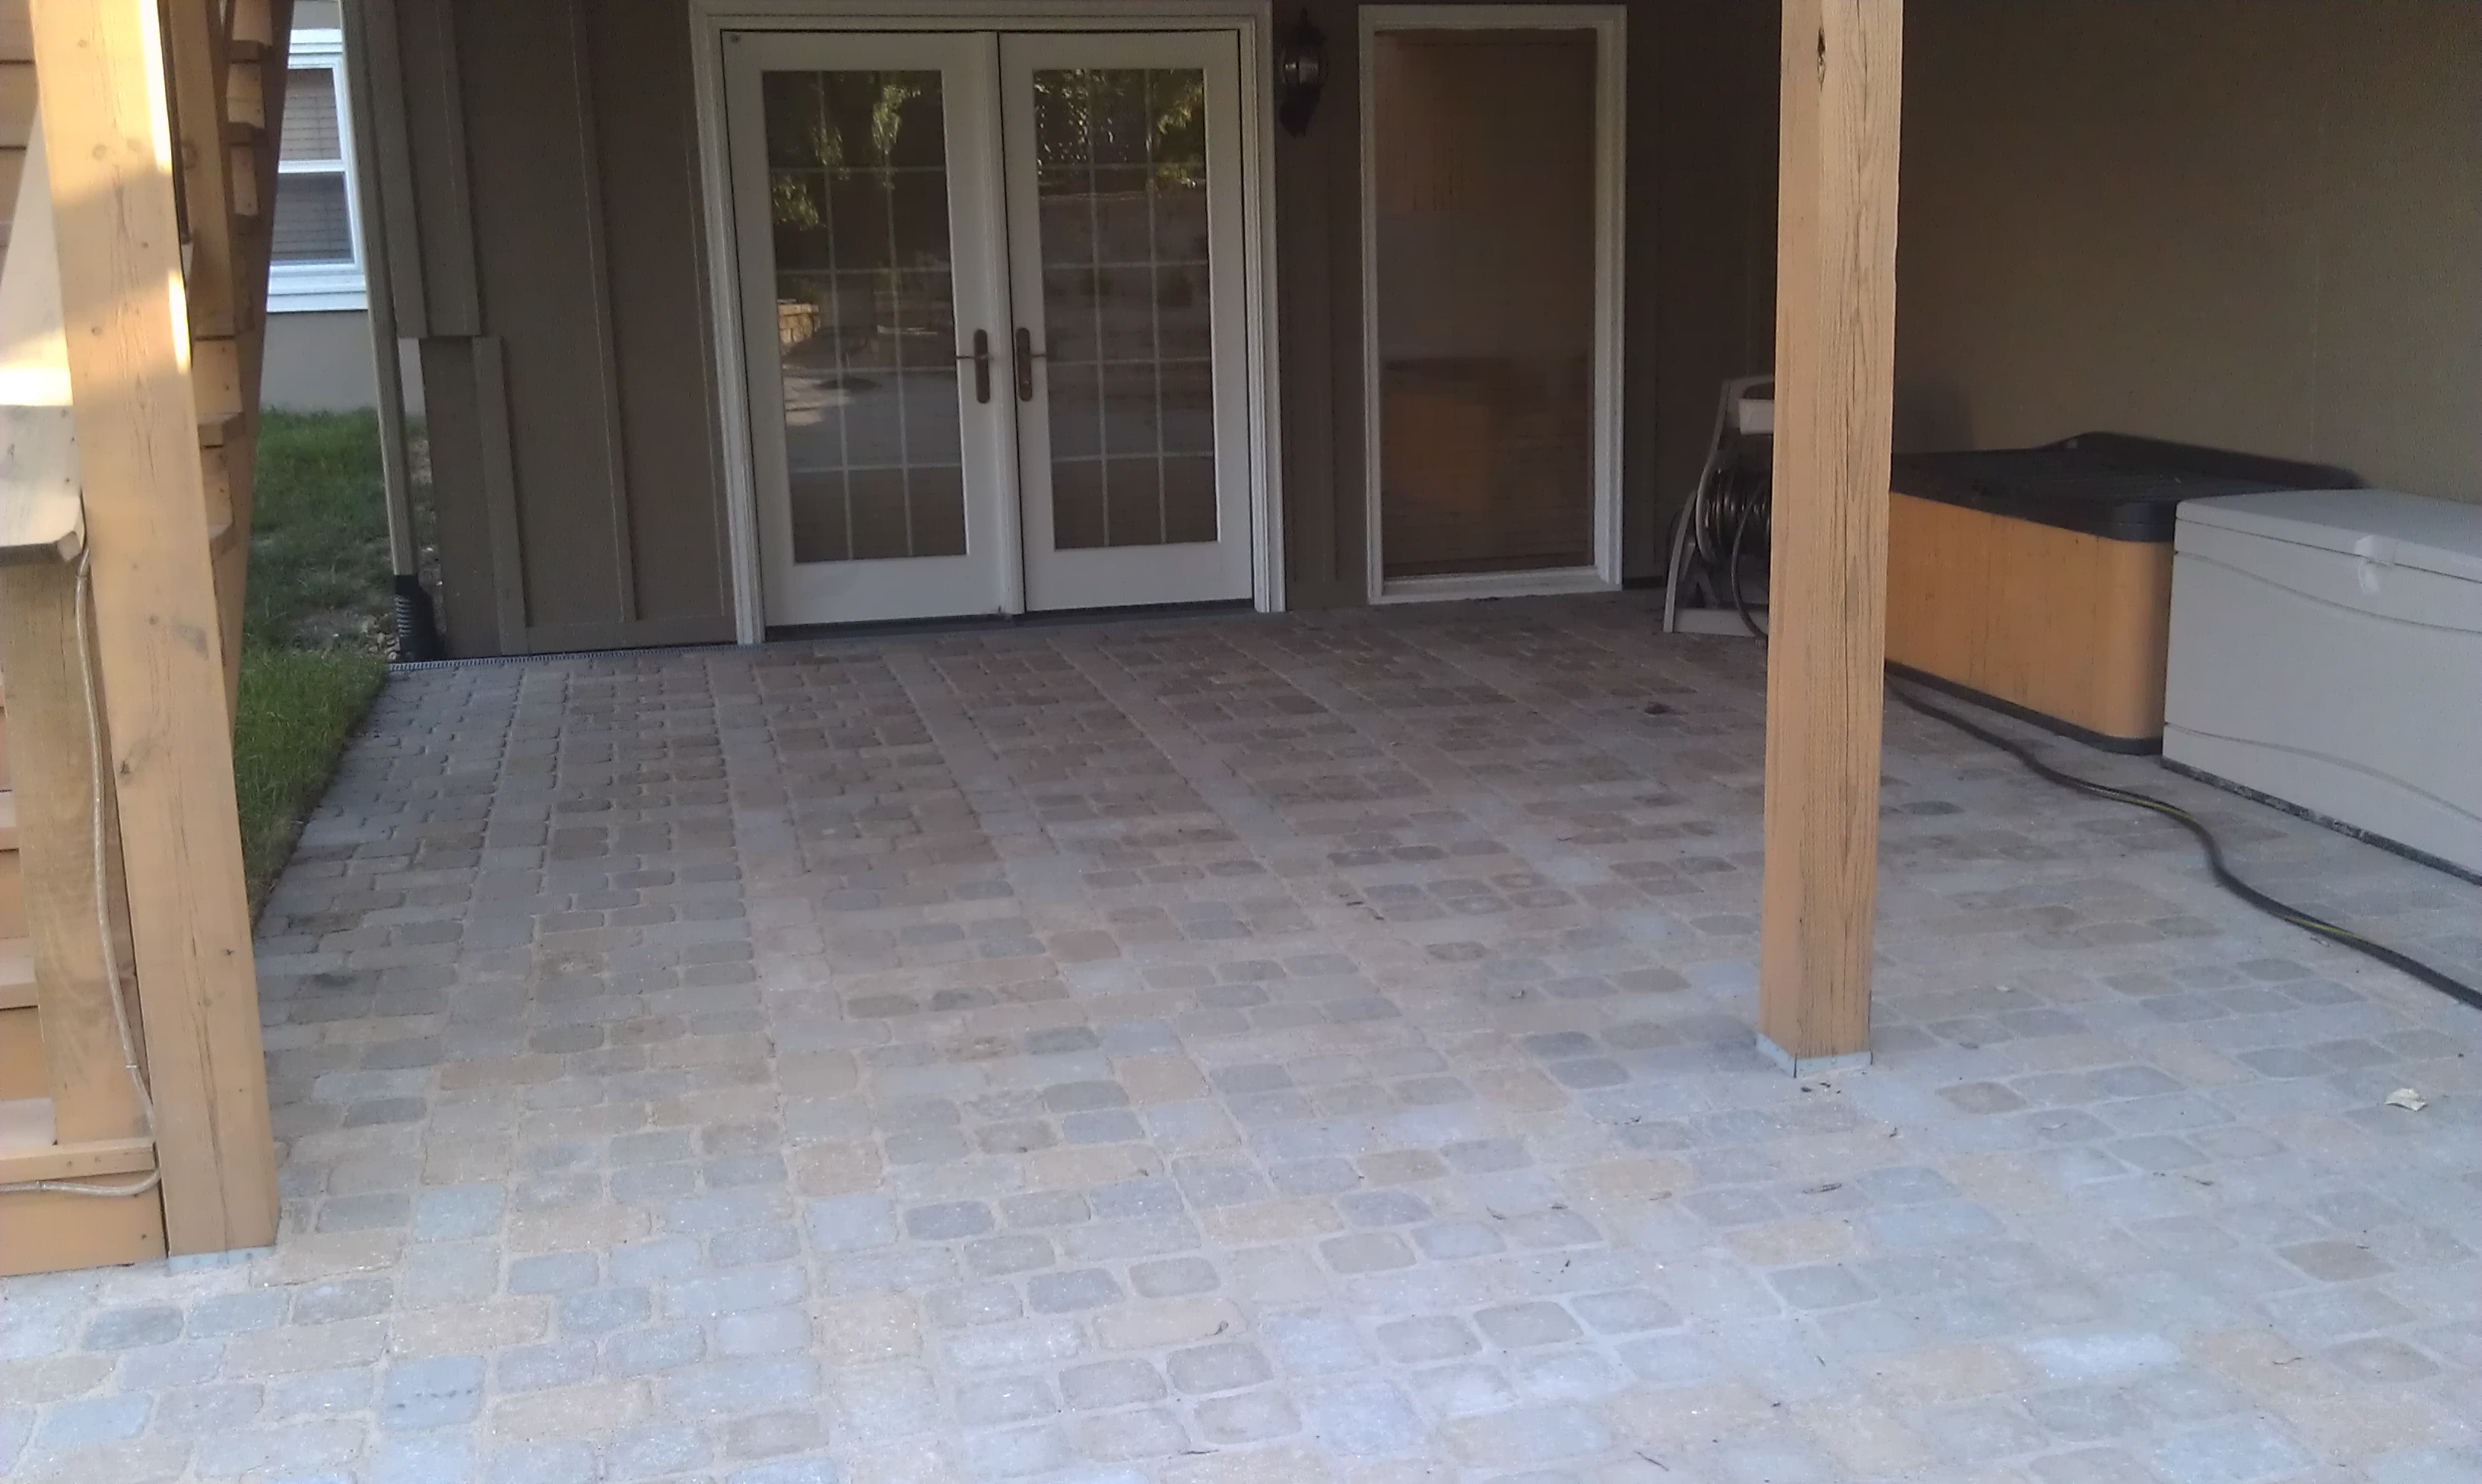 #7 - After view of patio